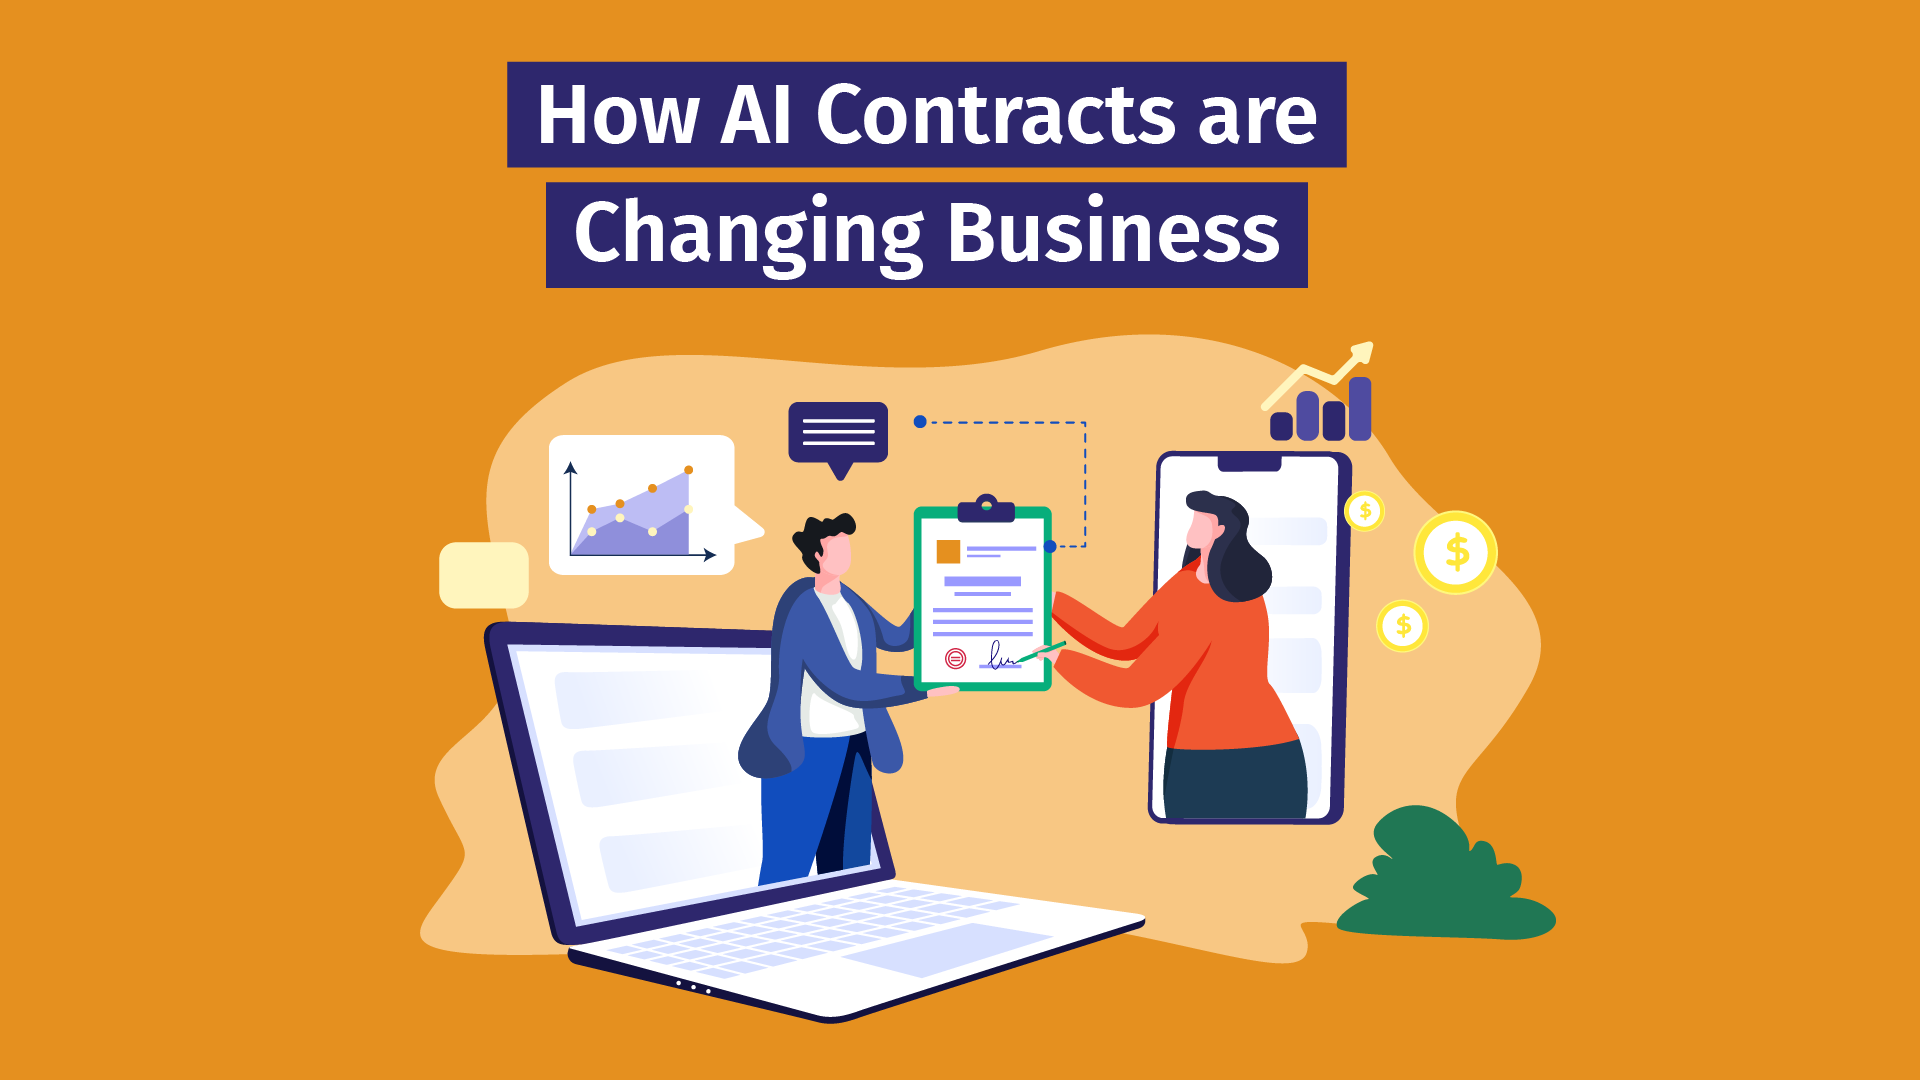 How AI Contracts are Changing Business